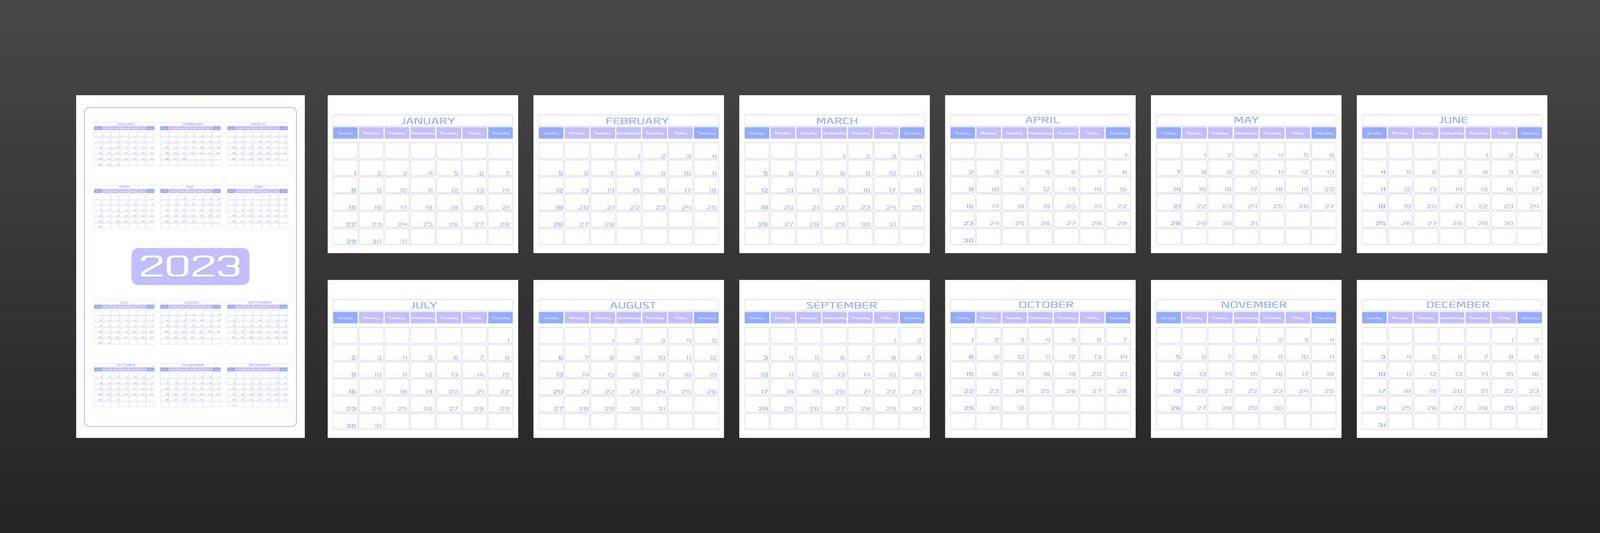 2023 calendar in minimalistic urban trendy style. set of 12 months template daily planner to-do list for every day. rounded streamlined shape, delicate light lavender purple color. week starts on Sunday.